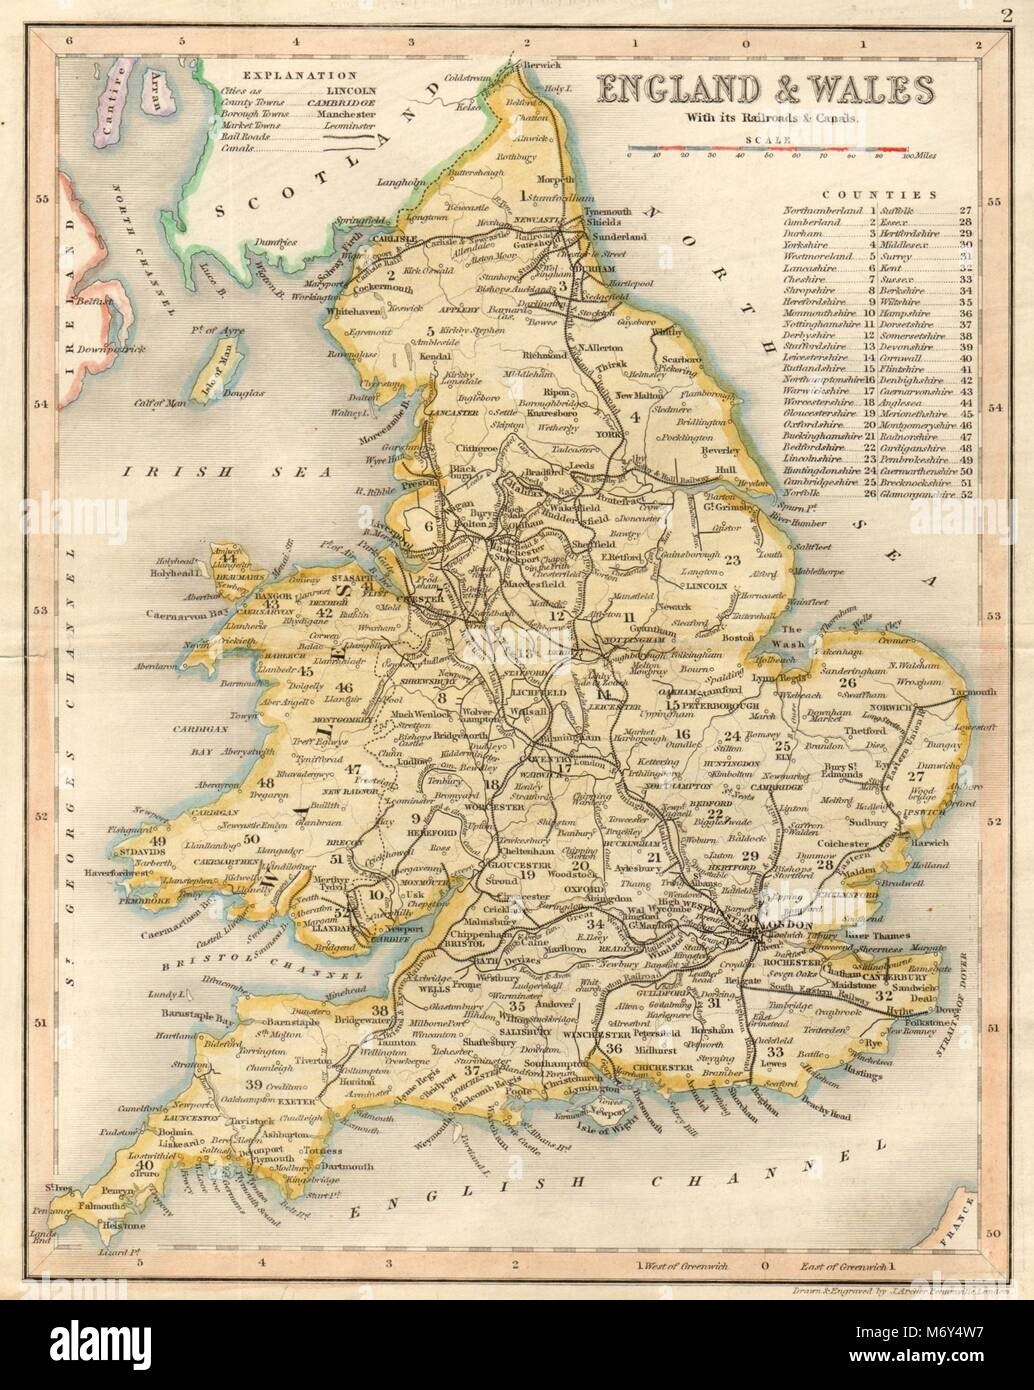 England wales with its railrods canals by archer dugdale 1845 england wales with its railrods canals by archer dugdale 1845 old map gumiabroncs Gallery